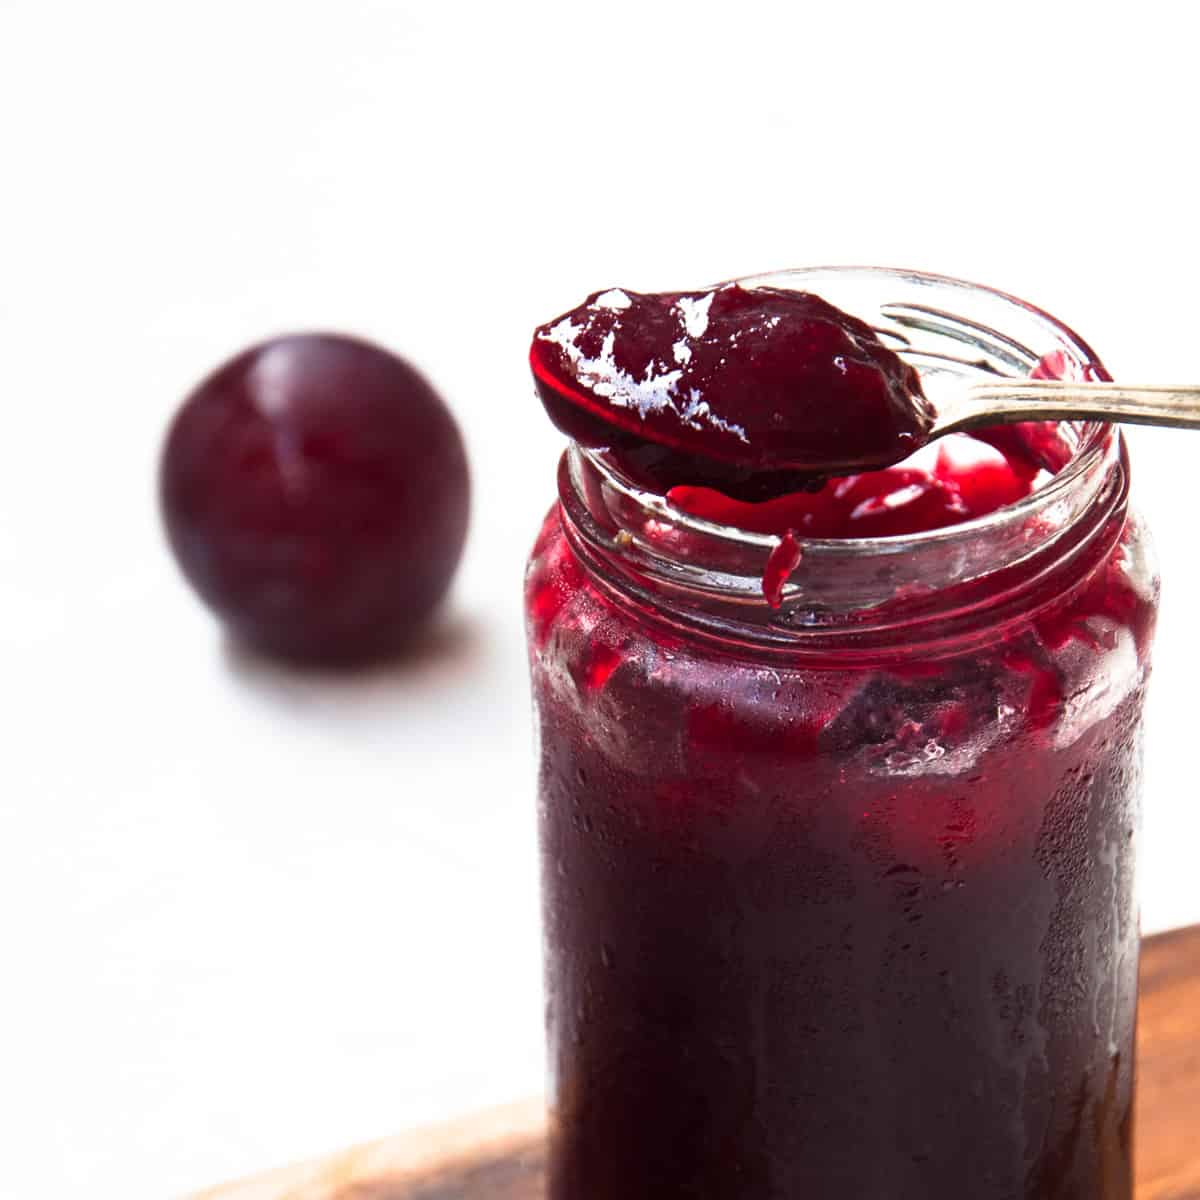 Plum jam recipe with fresh plums